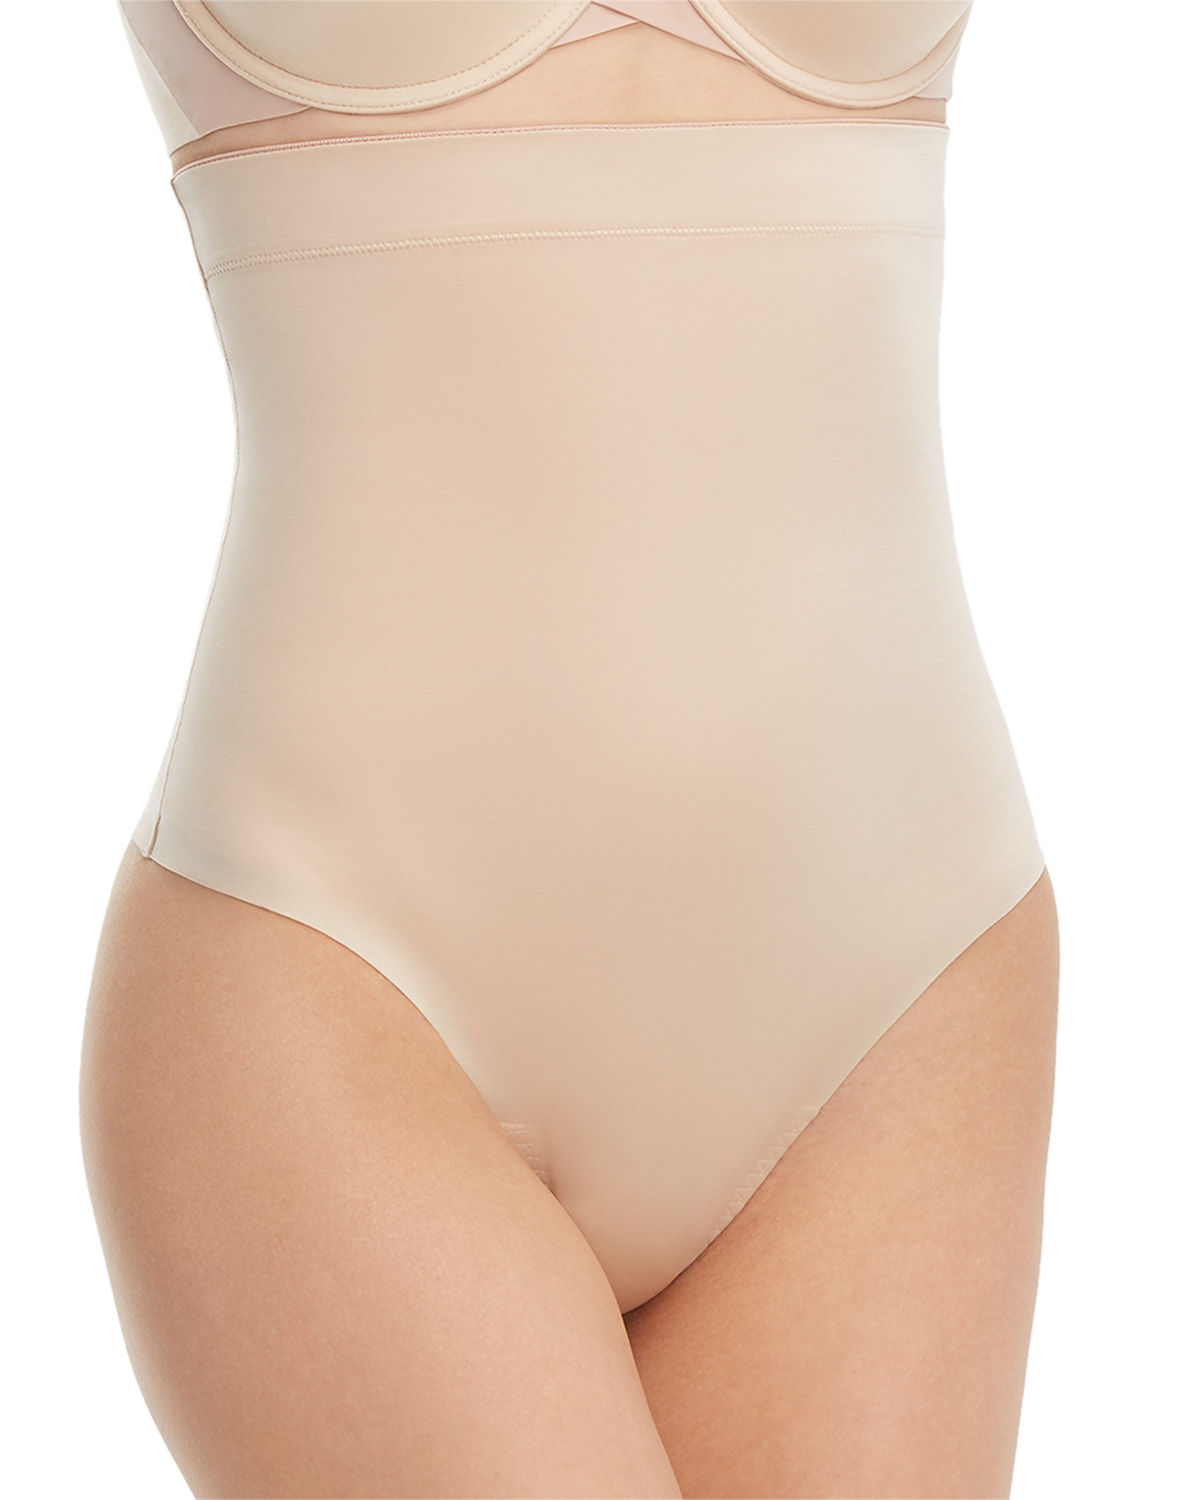 Spanx Suits PLUS SIZE SUIT YOUR FANCY HIGH-WAISTED THONG